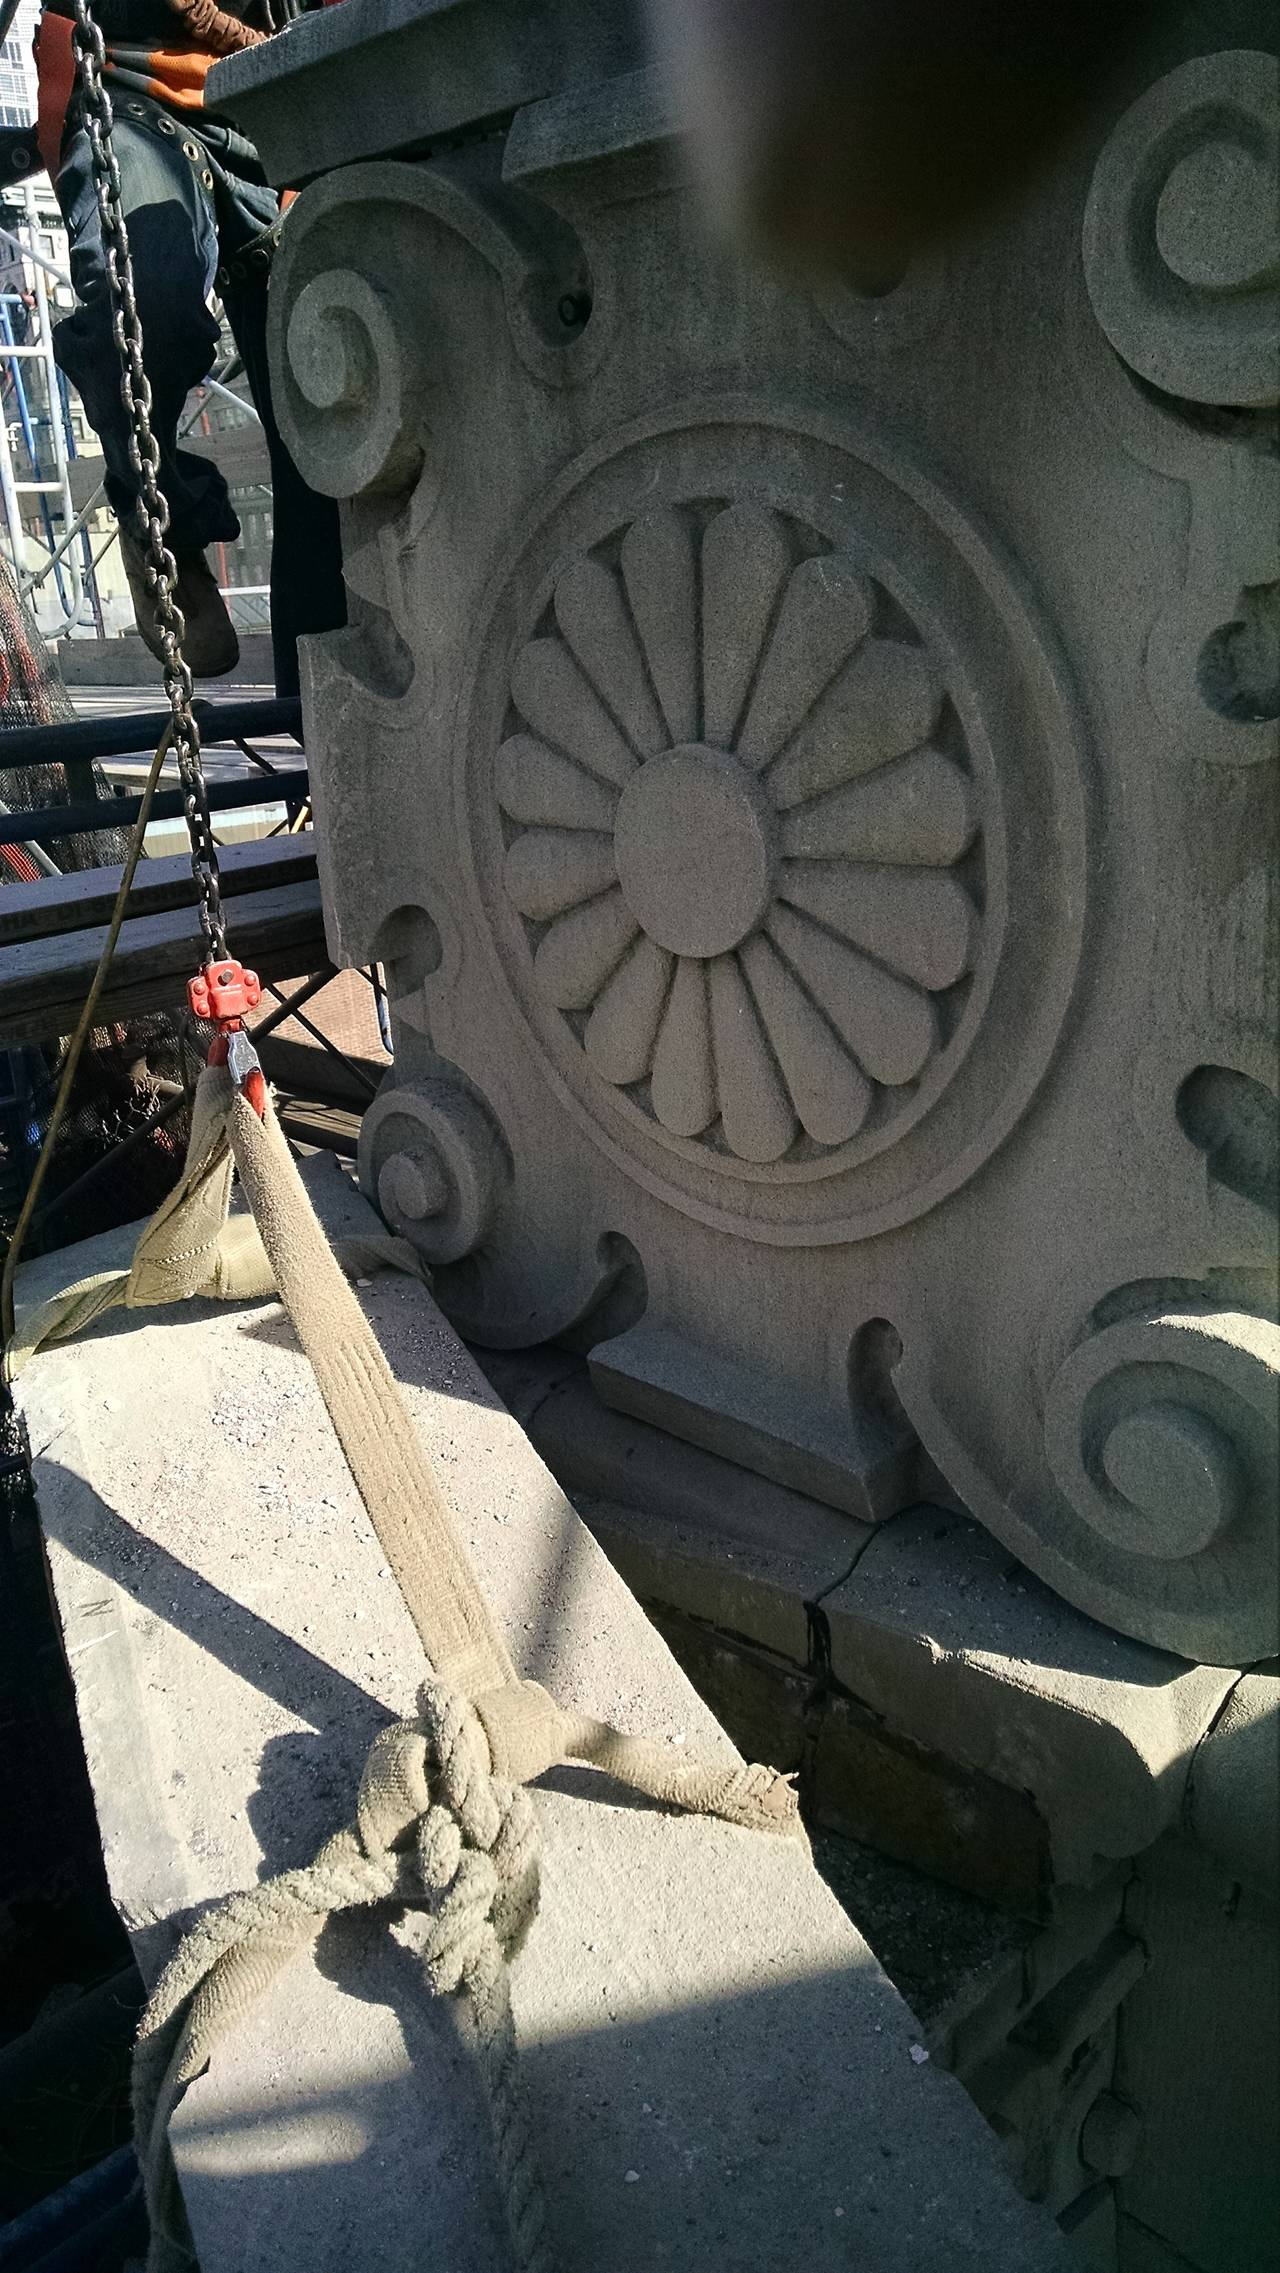 These hand-carved limestone obelisks with decorative base were salvaged from a church building on 3 West 29th St. in Manhattan. They adorned the top outer corners of the building's roof. The 17 foot height is for the limestone only, not counting the